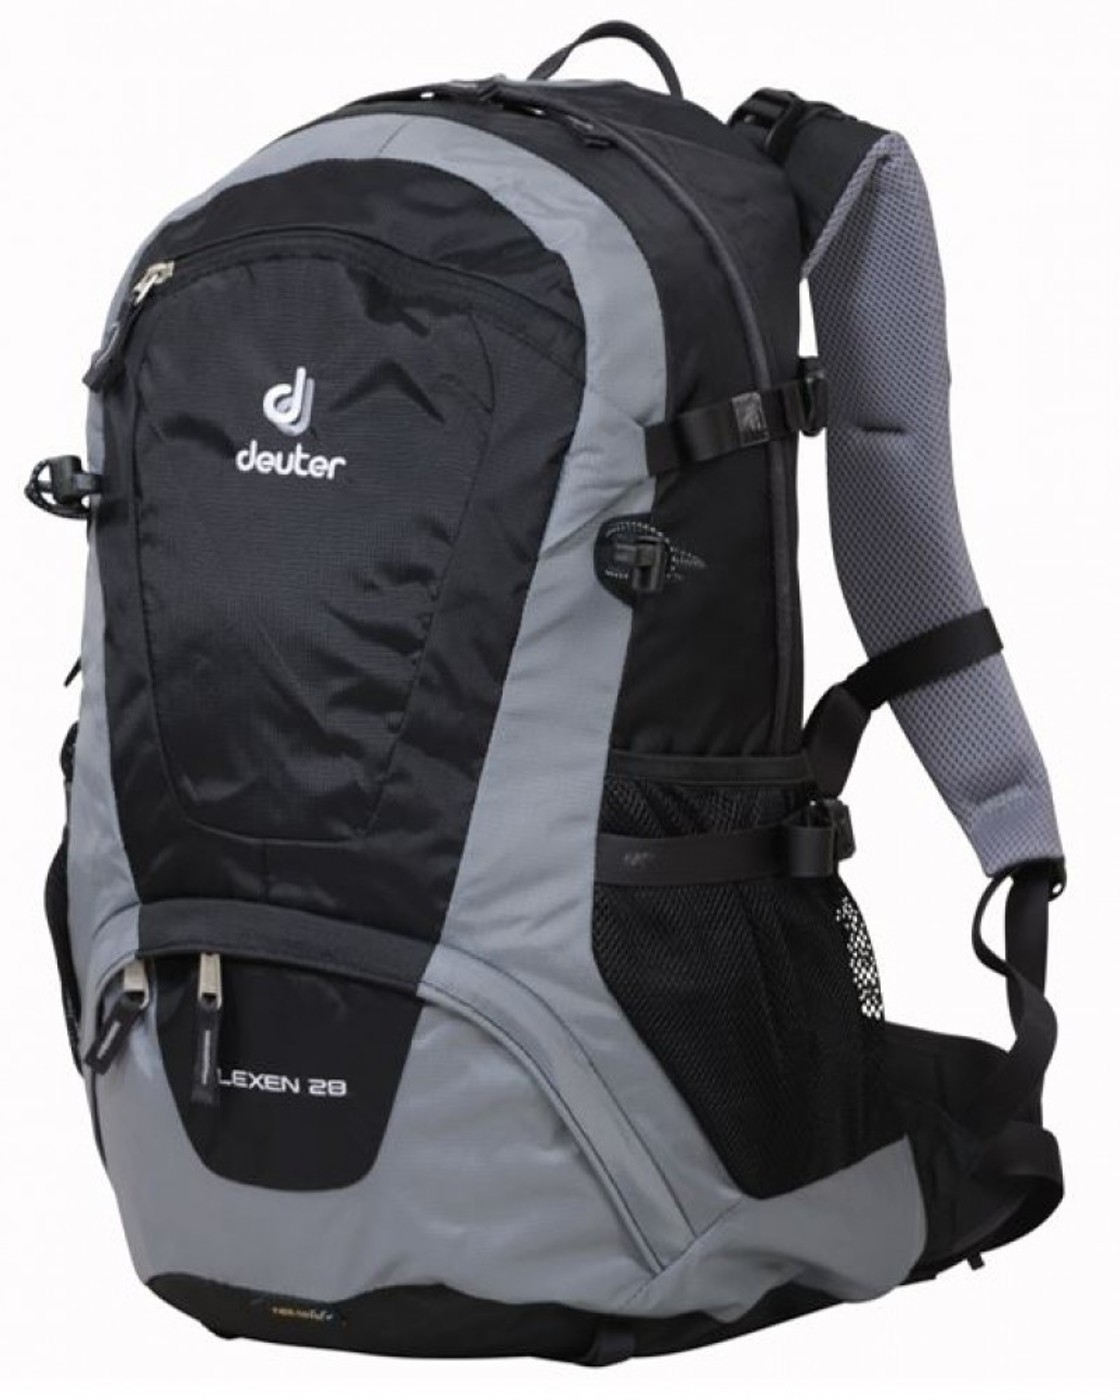 DEUTER FLEXEN 28